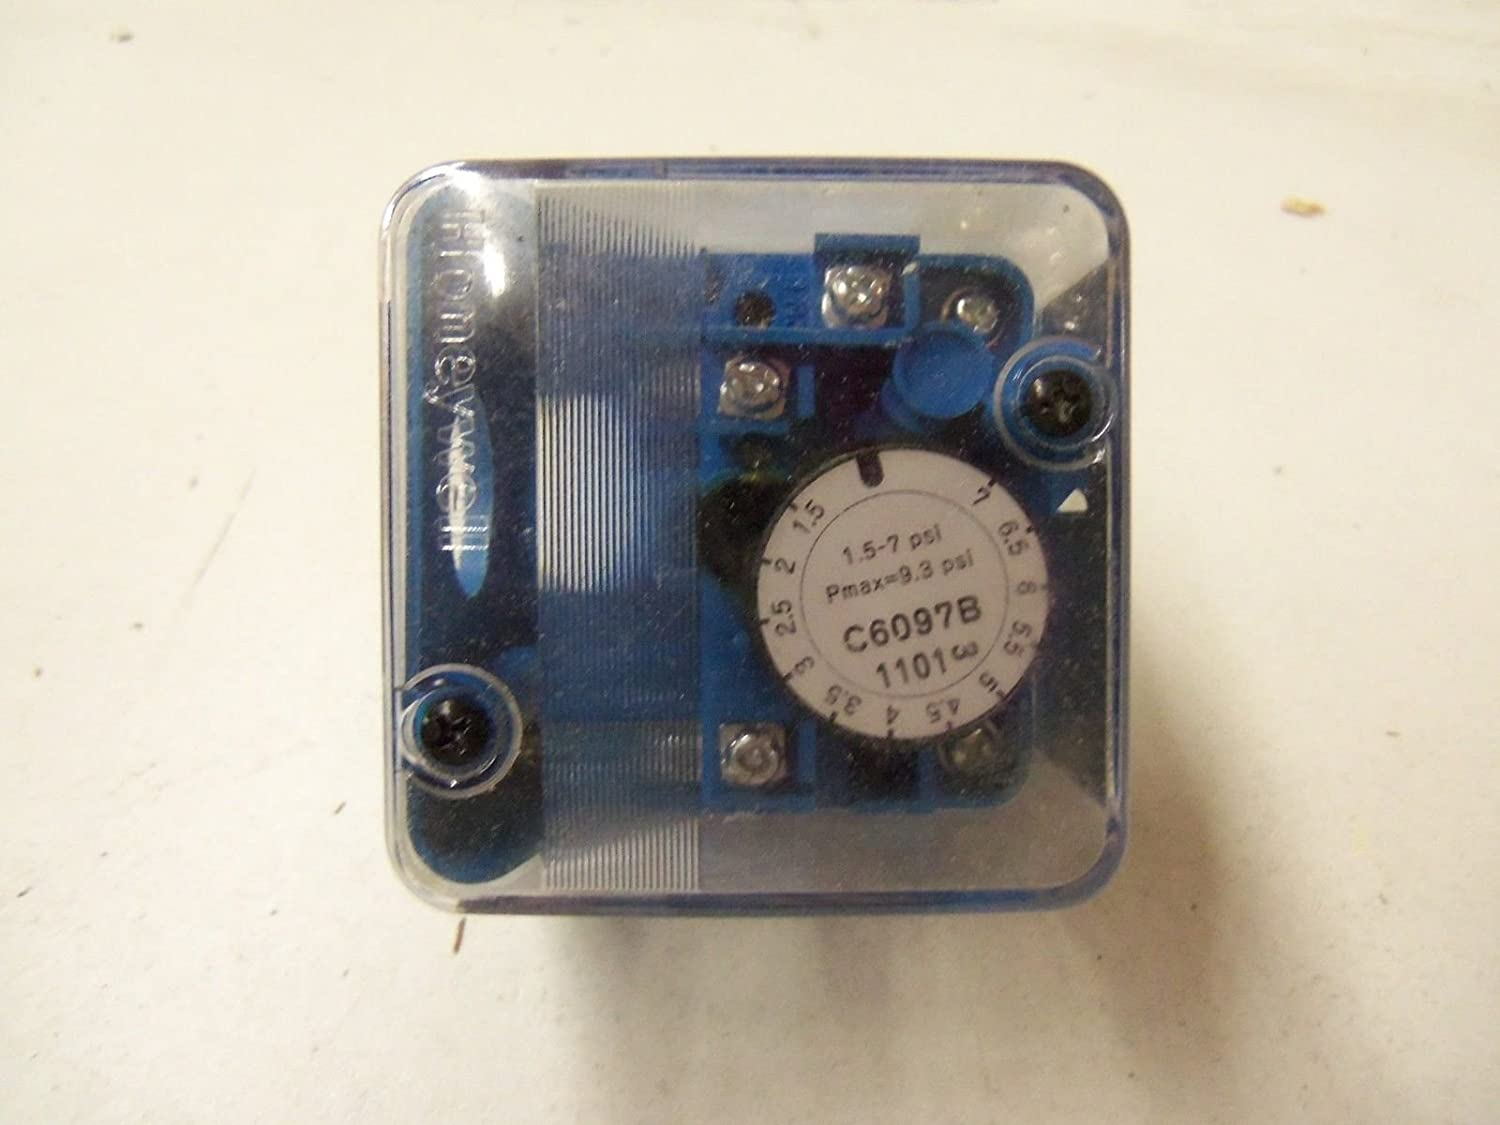 Inc C6097B1101 Pressure Switch Honeywell 1.5 to 7 psi